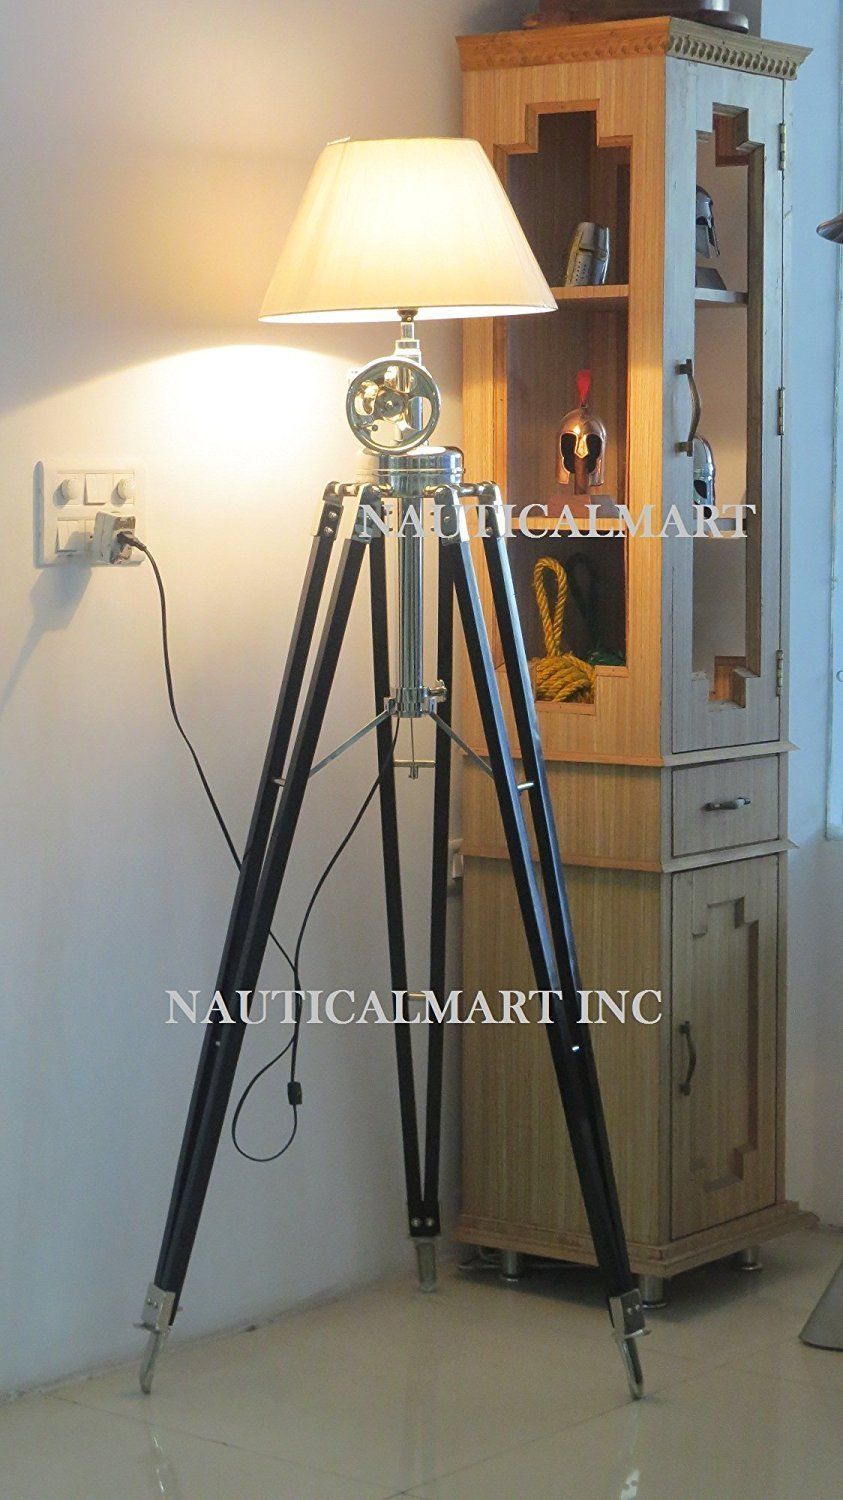 Decorative royal marine tripod floor lamp by nauticalmart amazon decorative royal marine tripod floor lamp by nauticalmart amazon lighting aloadofball Gallery